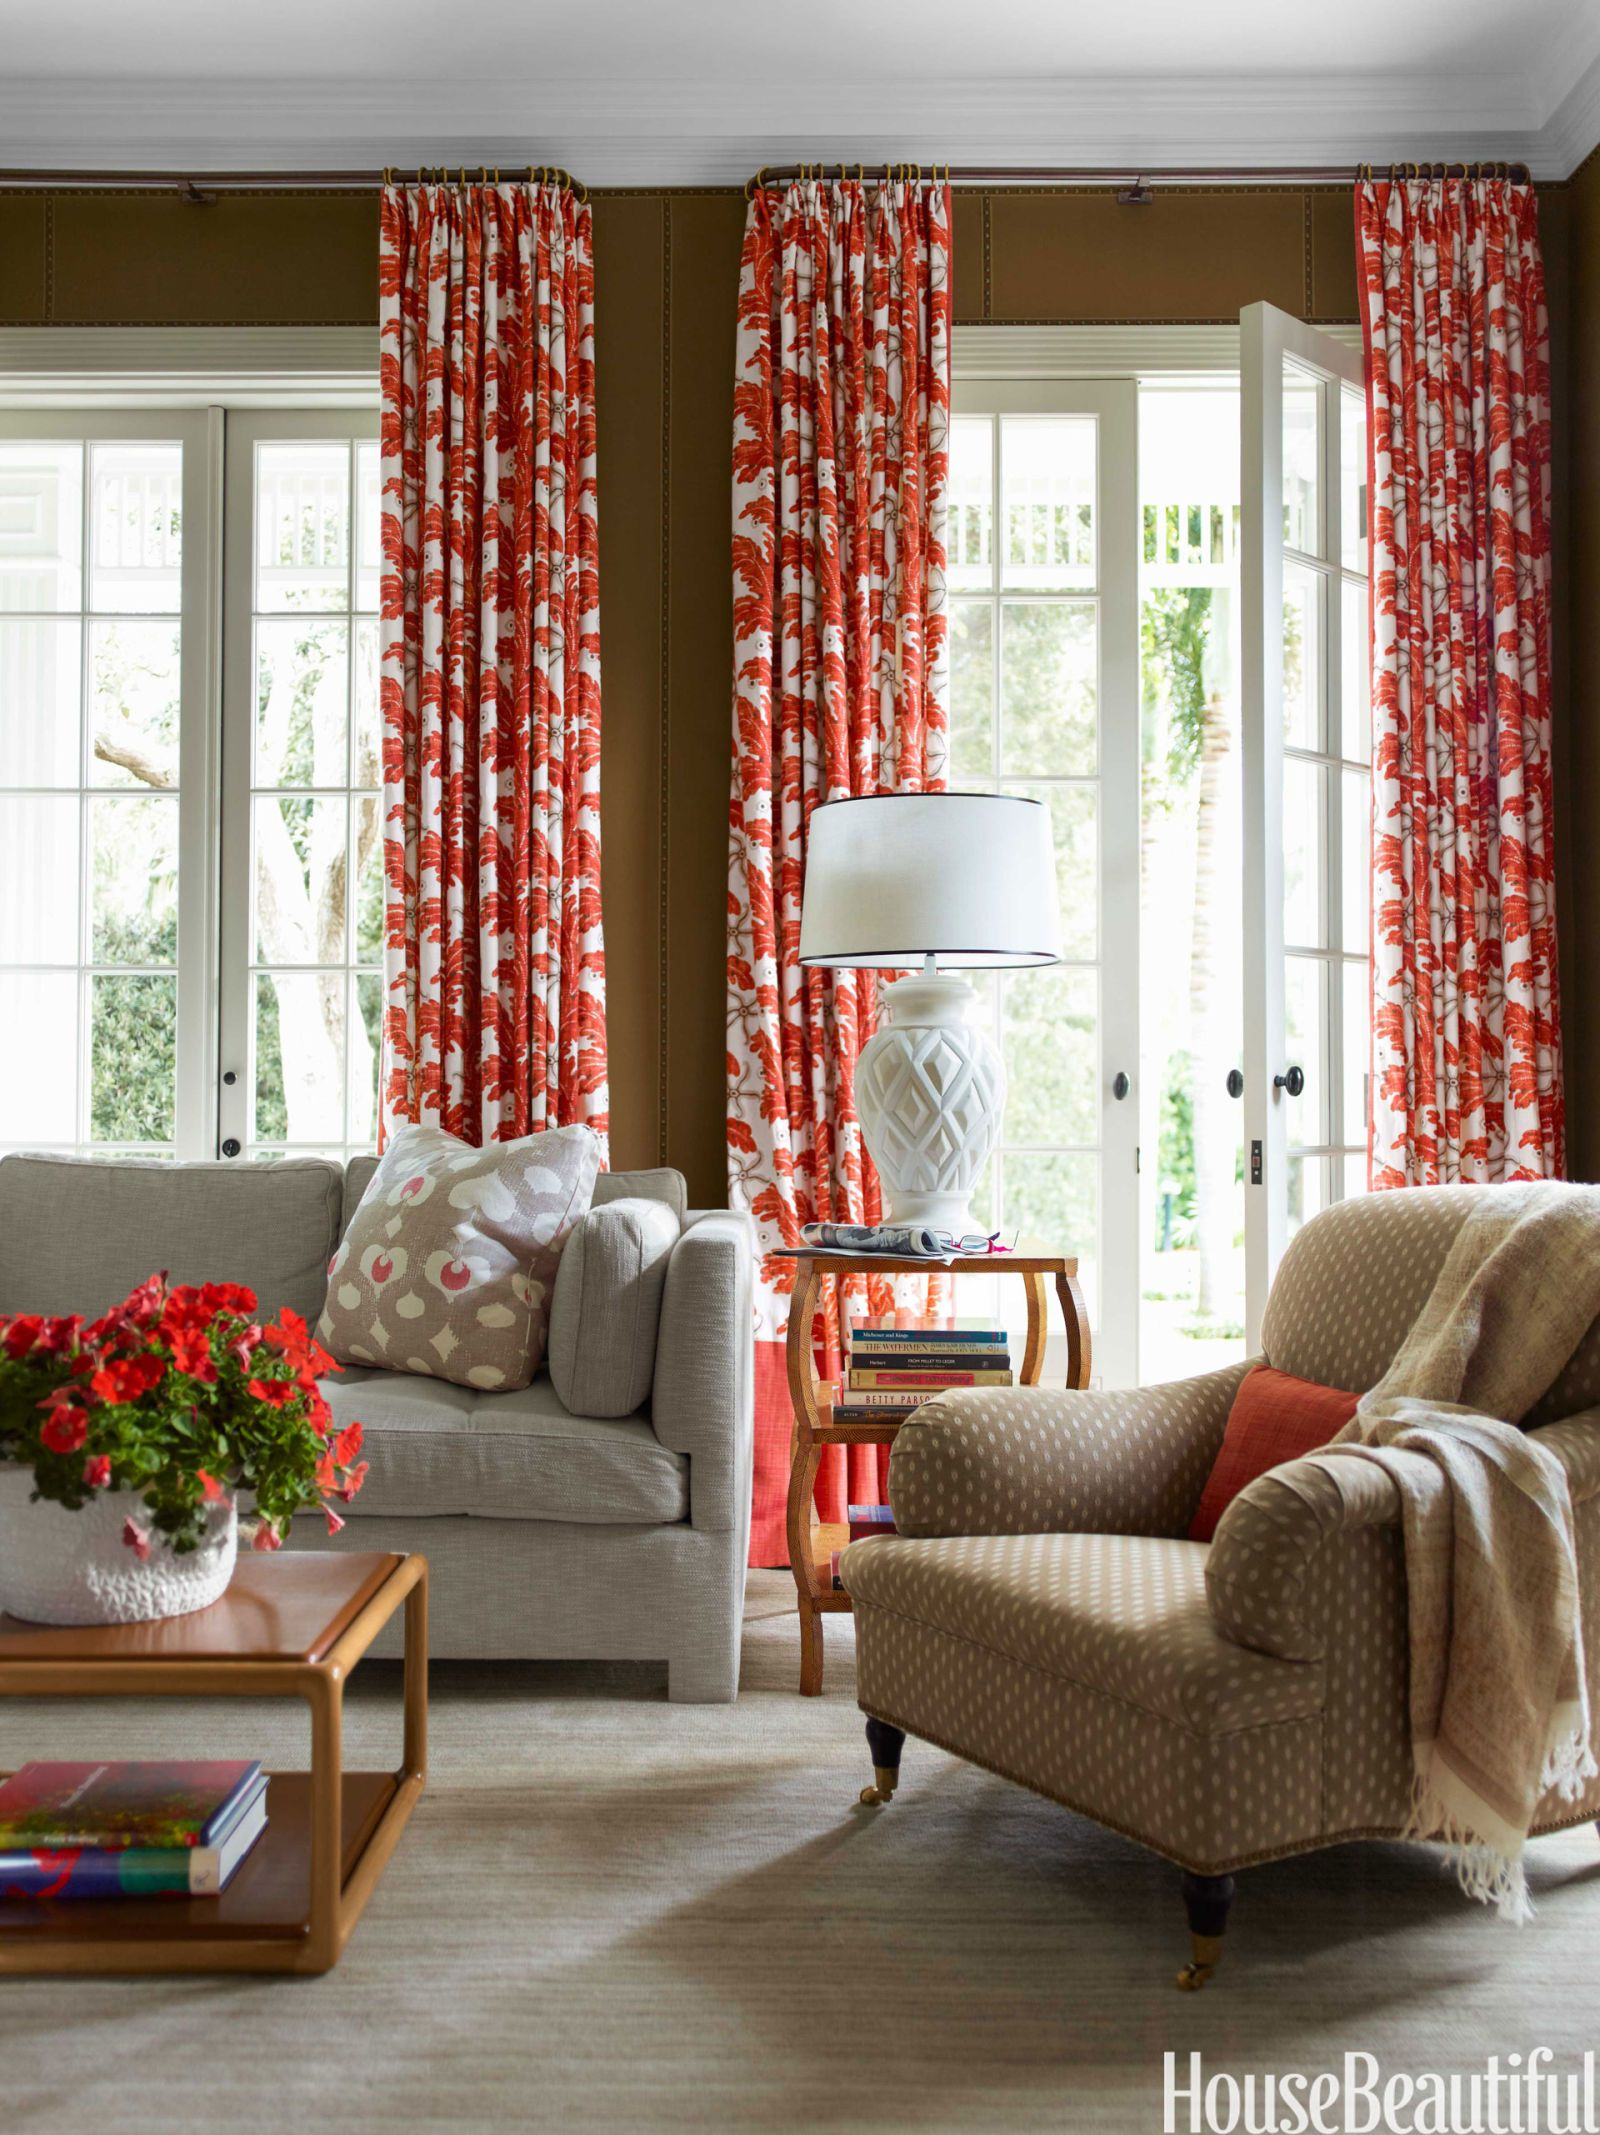 design curtains for living room.  60 Modern Window Treatment Ideas Best Curtains and Coverings